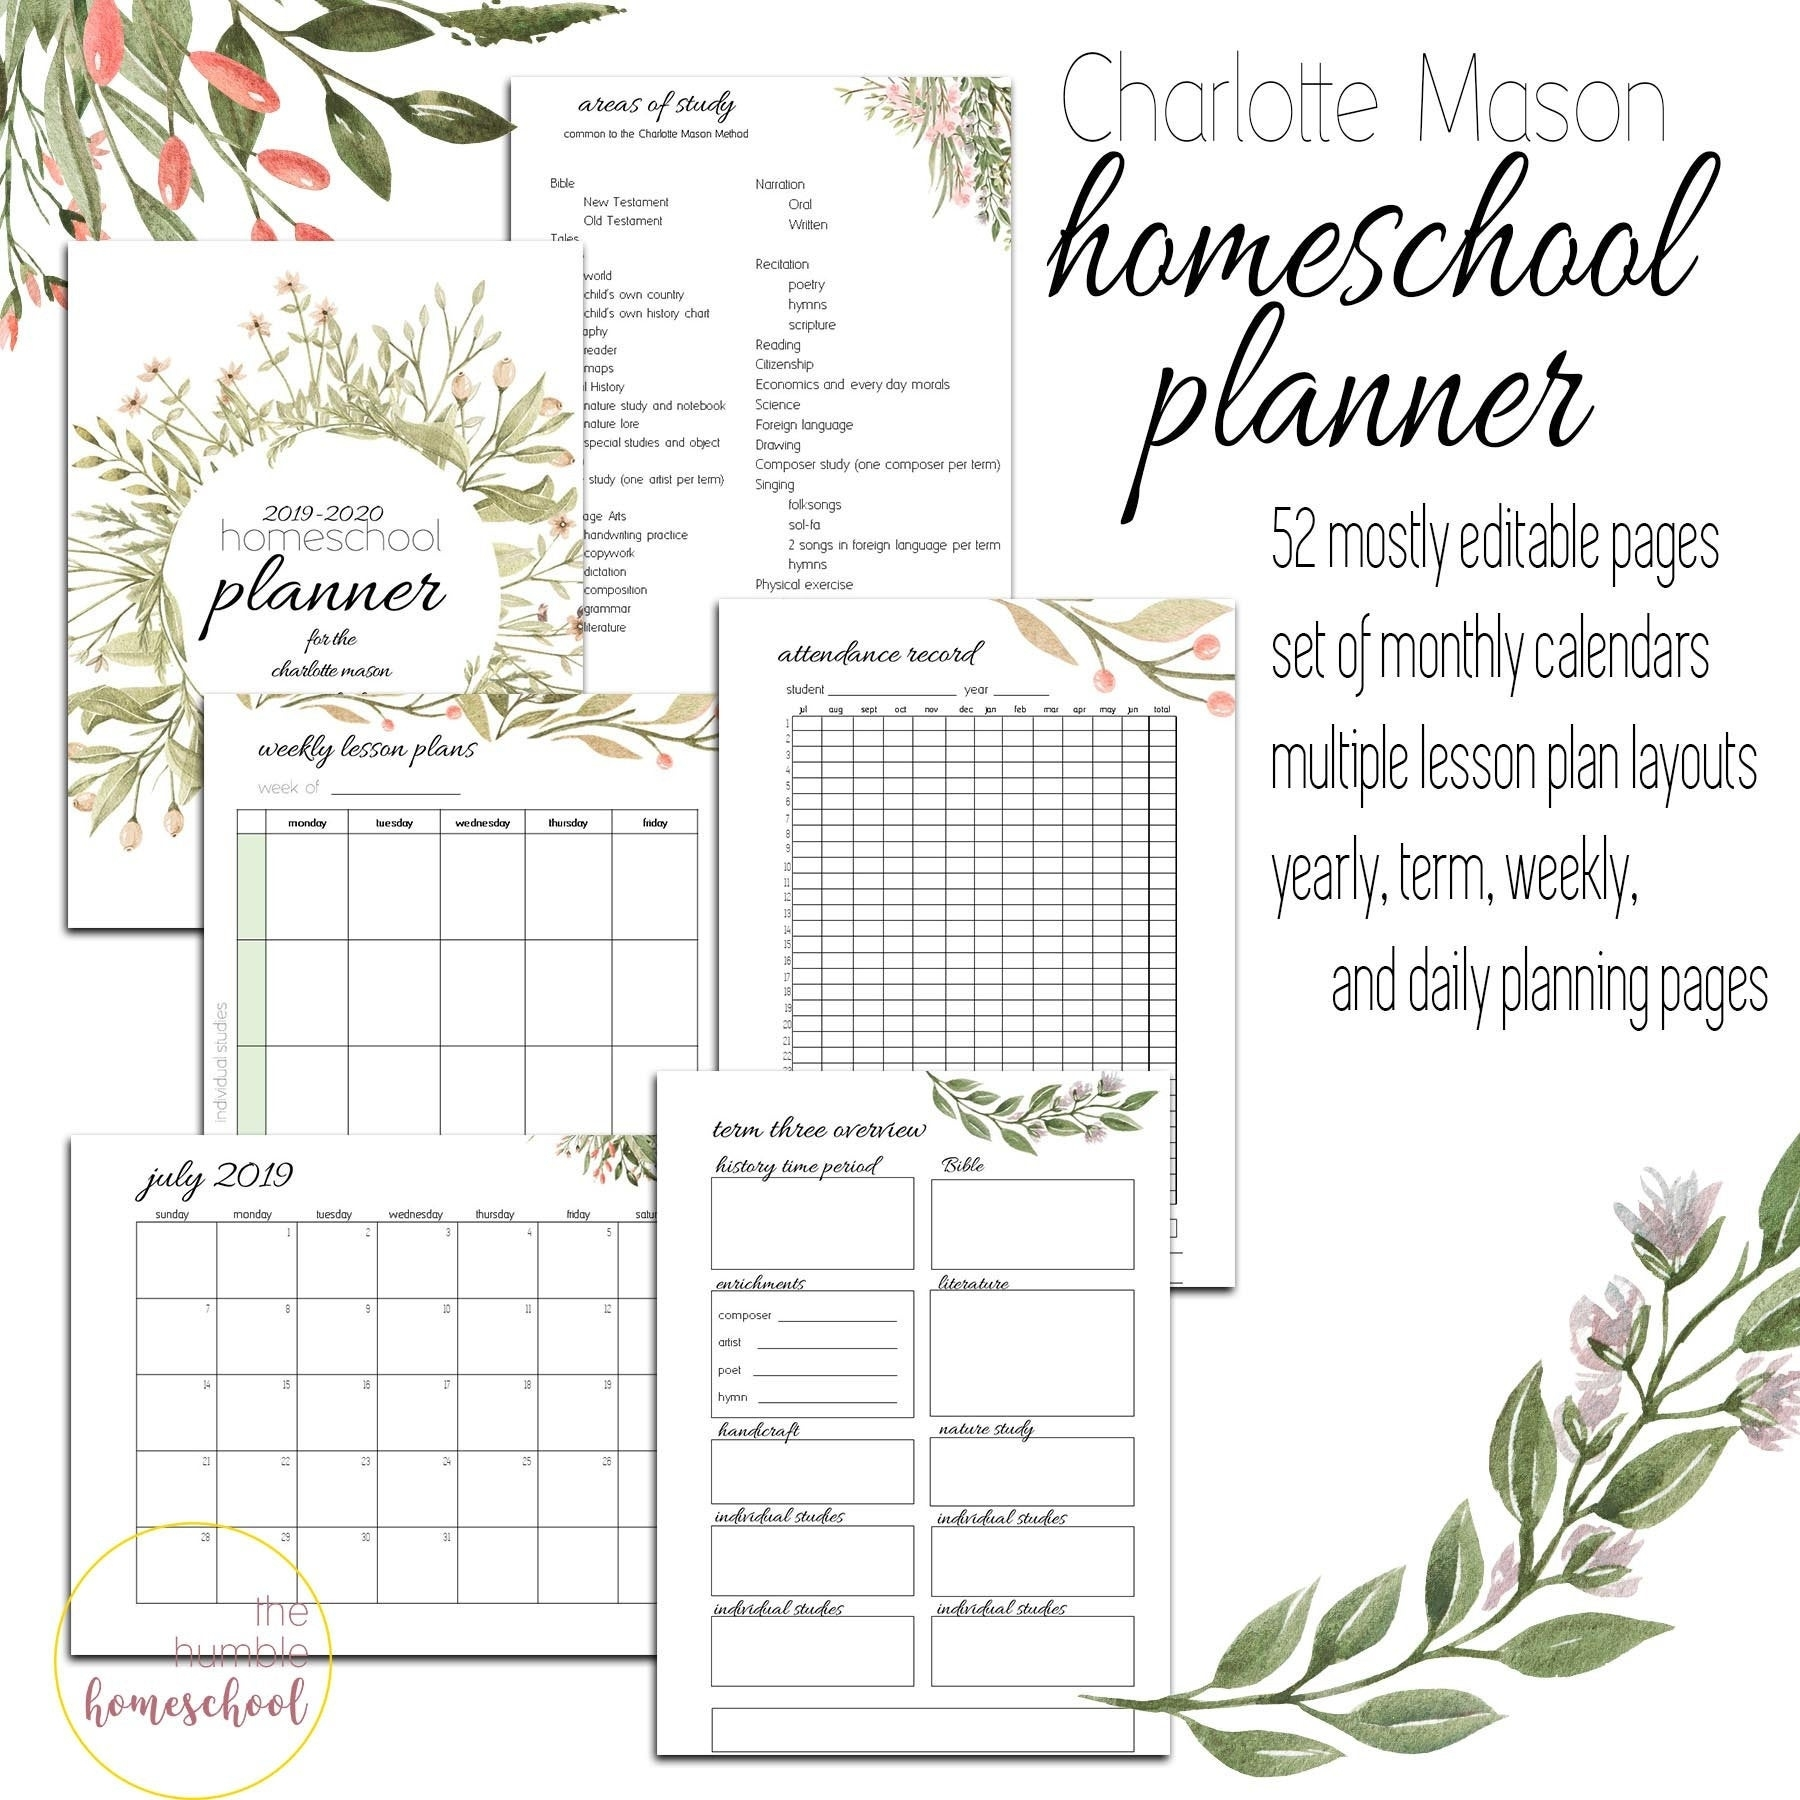 2019-2020 Charlotte Mason Homeschool Planner Editable | Etsy for Homeschool Year At A Glance 2019-2020 Botanical Calendar Printable Free